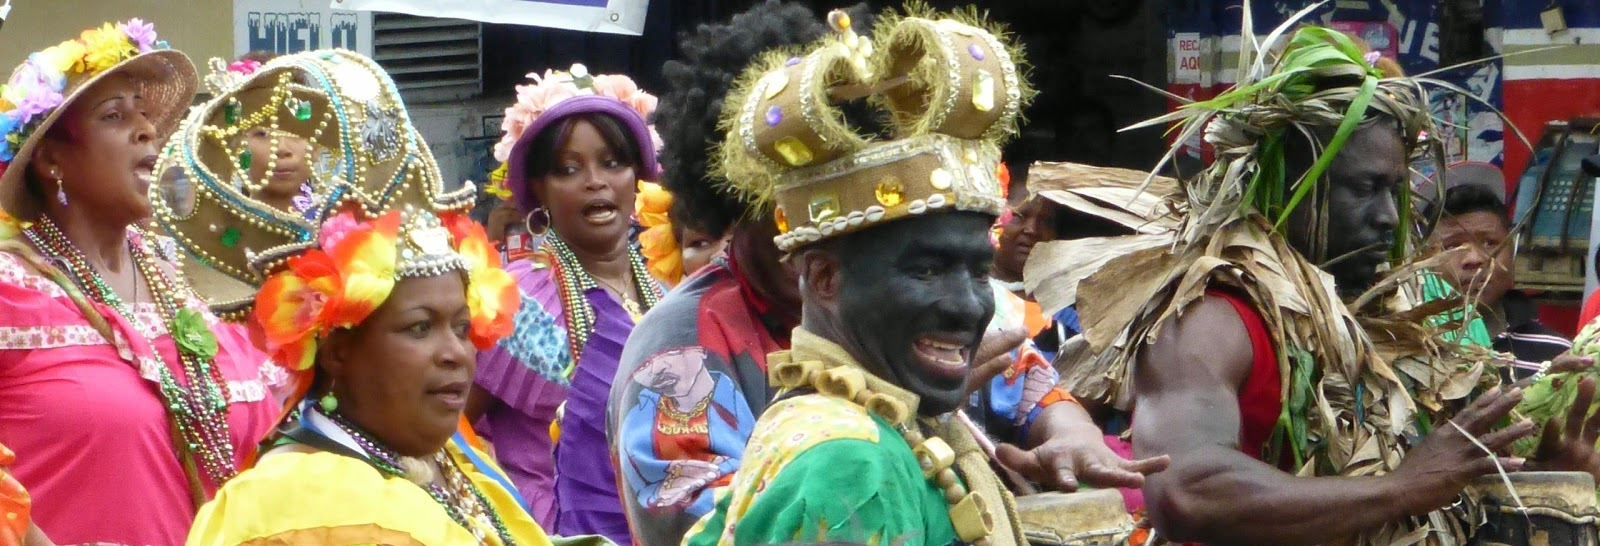 Dress up elements - The Festival However Gives Everyone The Chance To Dress Up And To Celebrate Their Heritage The Inhabitants The Congos Are Descended From Escaped Black